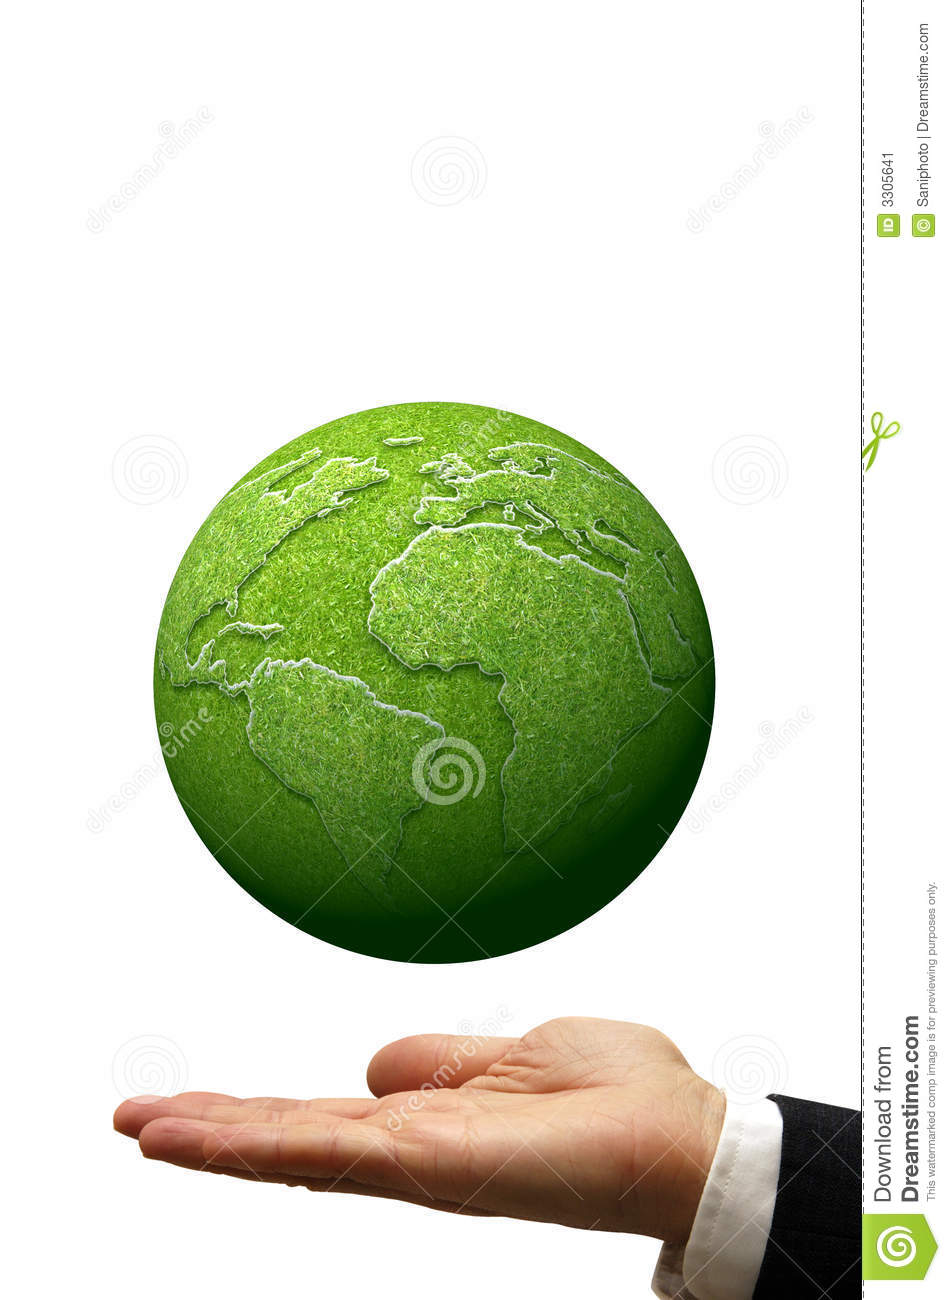 Businessman with open hand and an earth globe made of grass floating